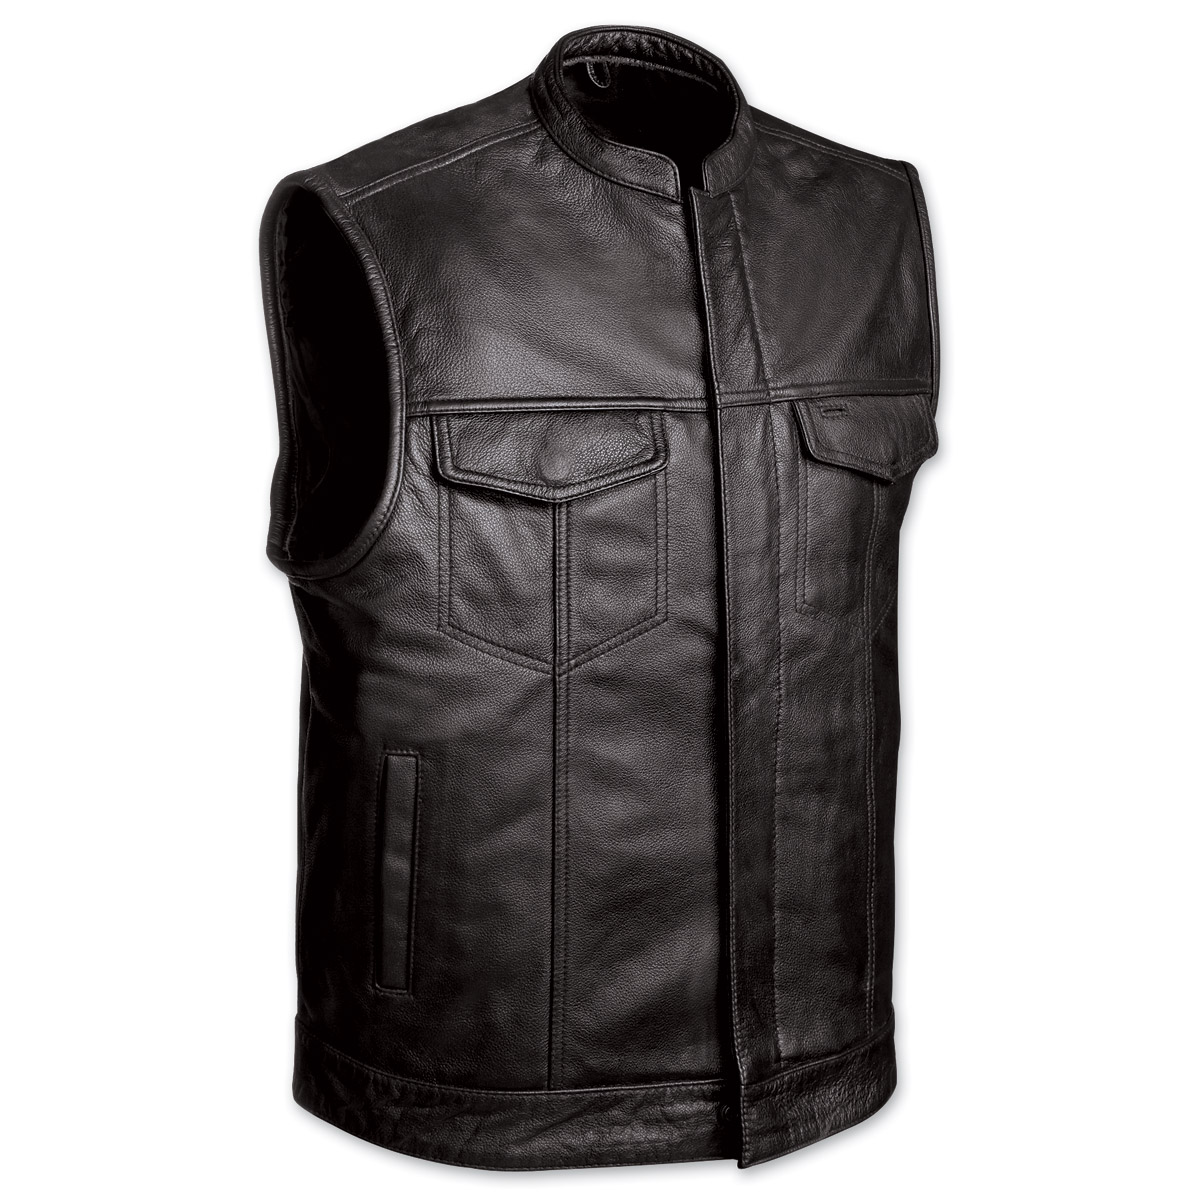 motorcycle vest menu0027s club motorcycle black leather vest OWAINGG